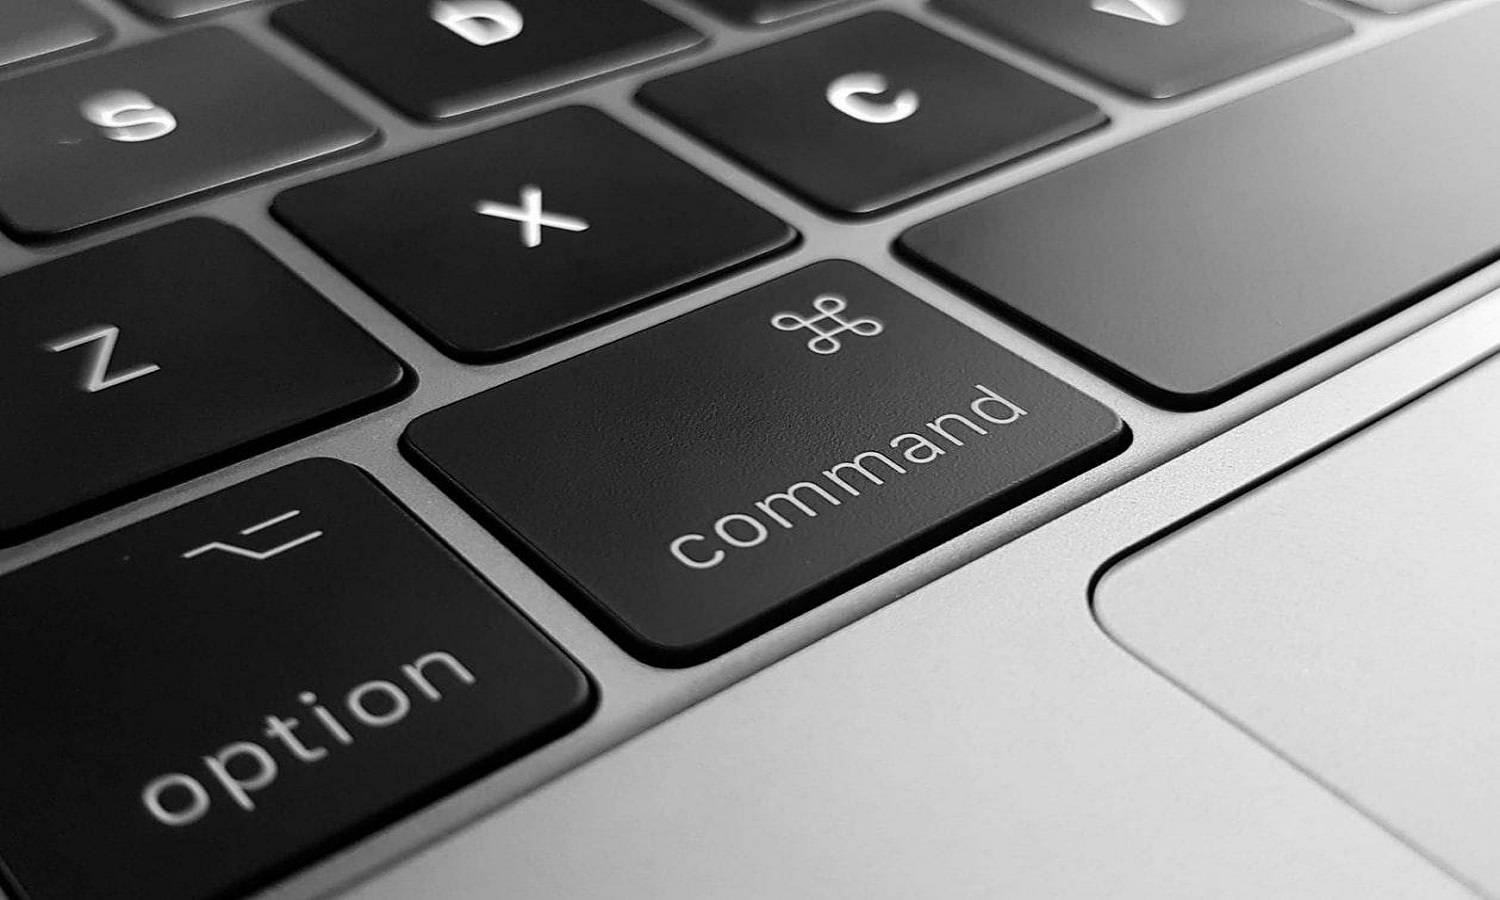 Windows 10 Run Commands You Should Know